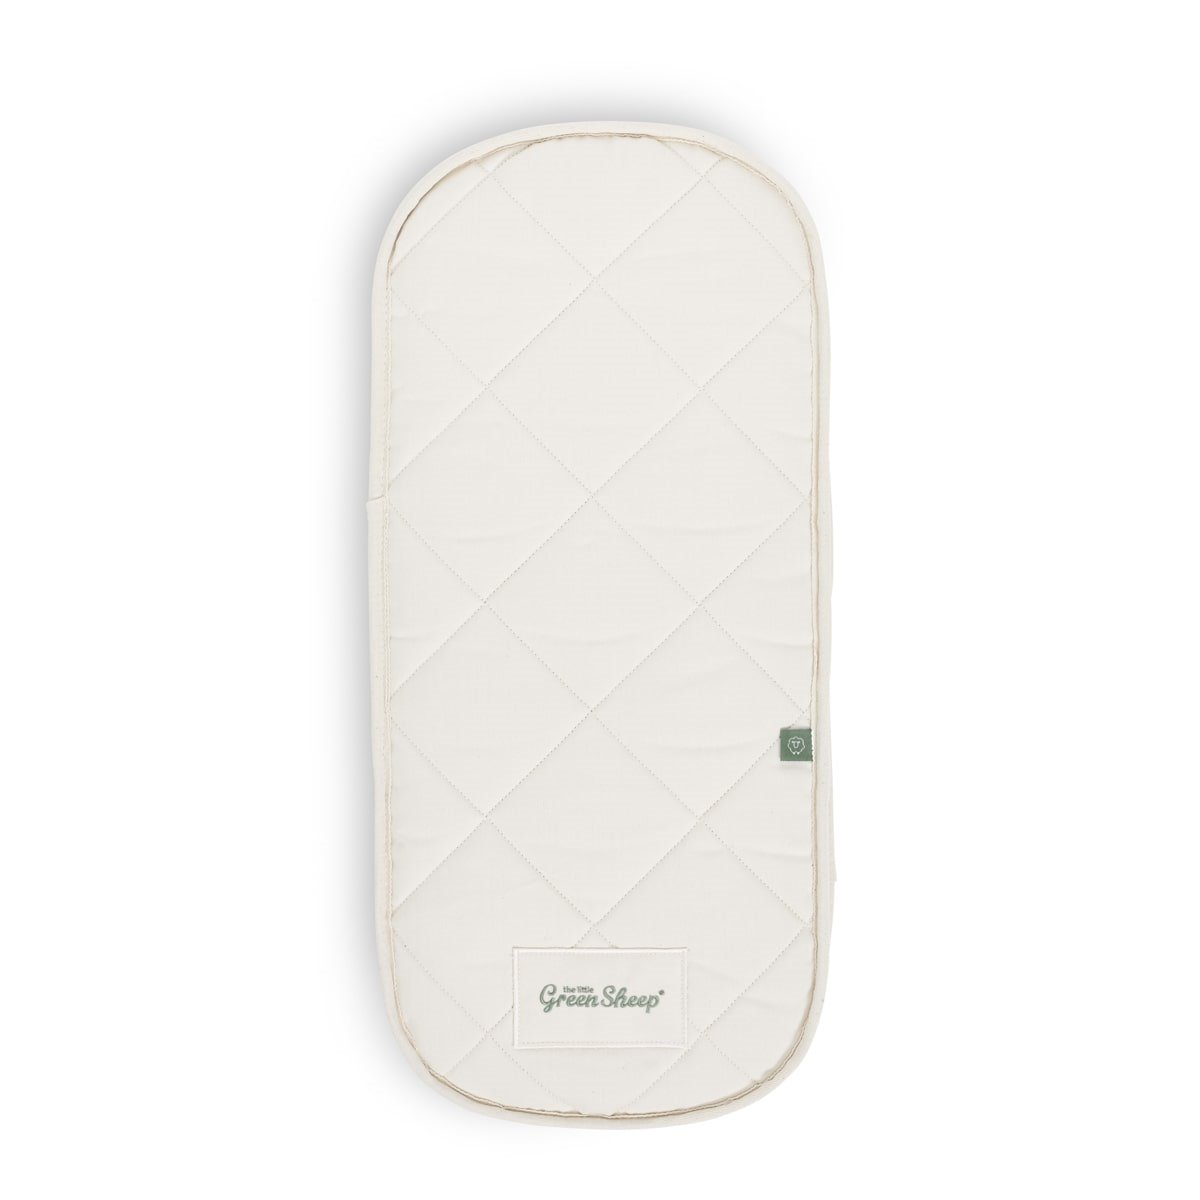 Natural Mothercare Moses Basket Mattress | The Little ...